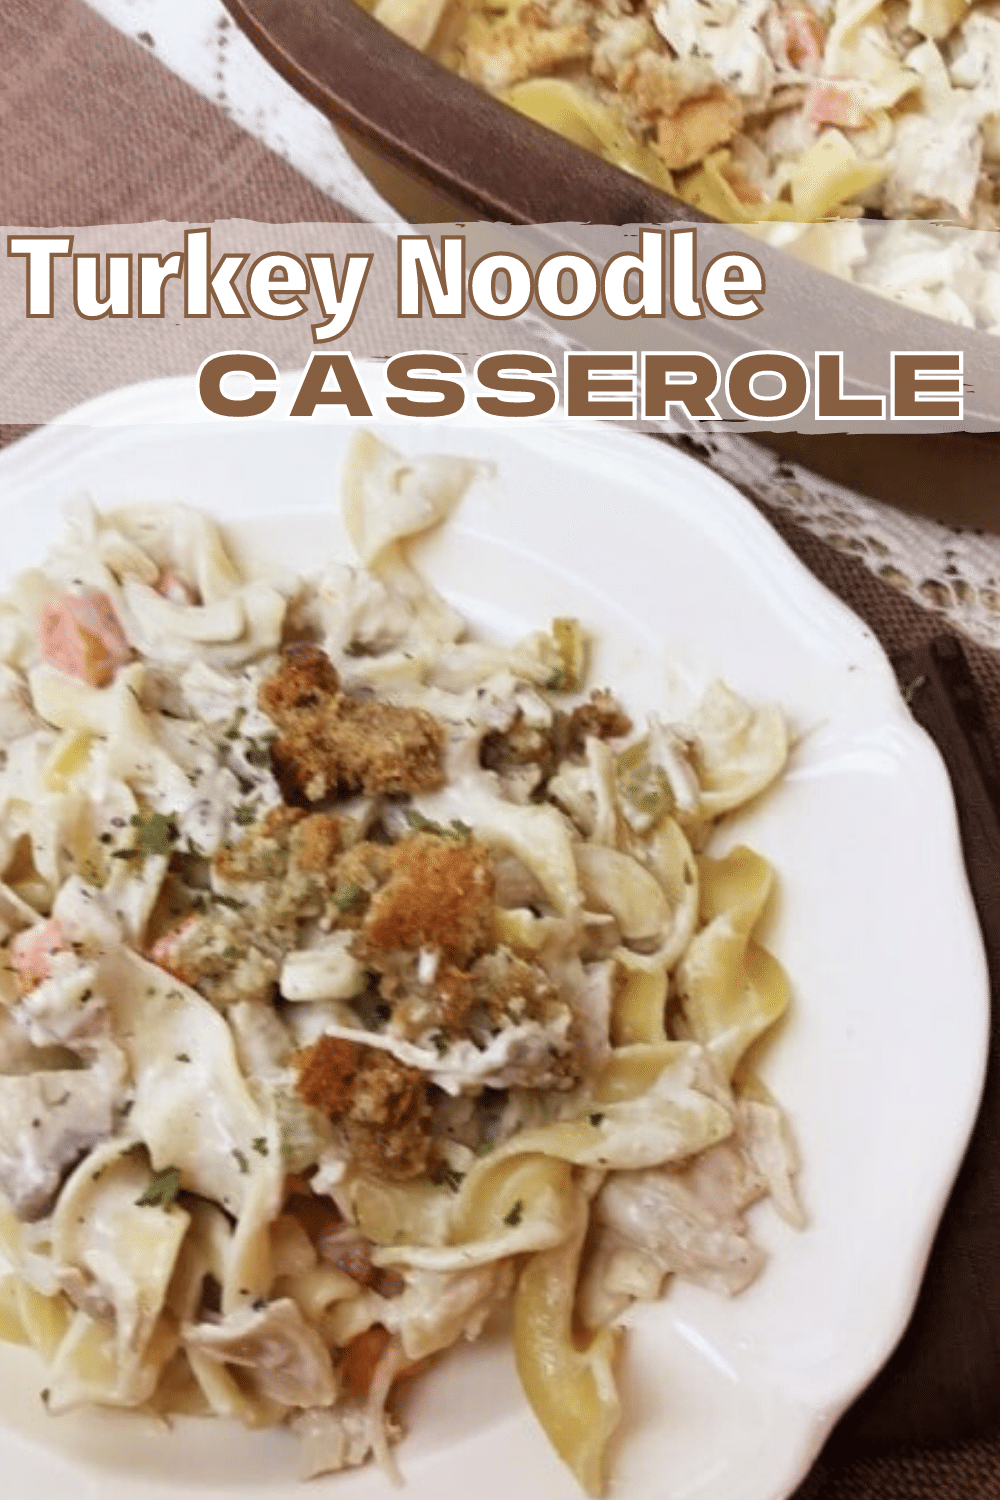 This turkey noodle casserole is so yummy and it's a great way to use leftover turkey or chicken. It's delicious! #turkey #casserole #easydinner via @wondermomwannab